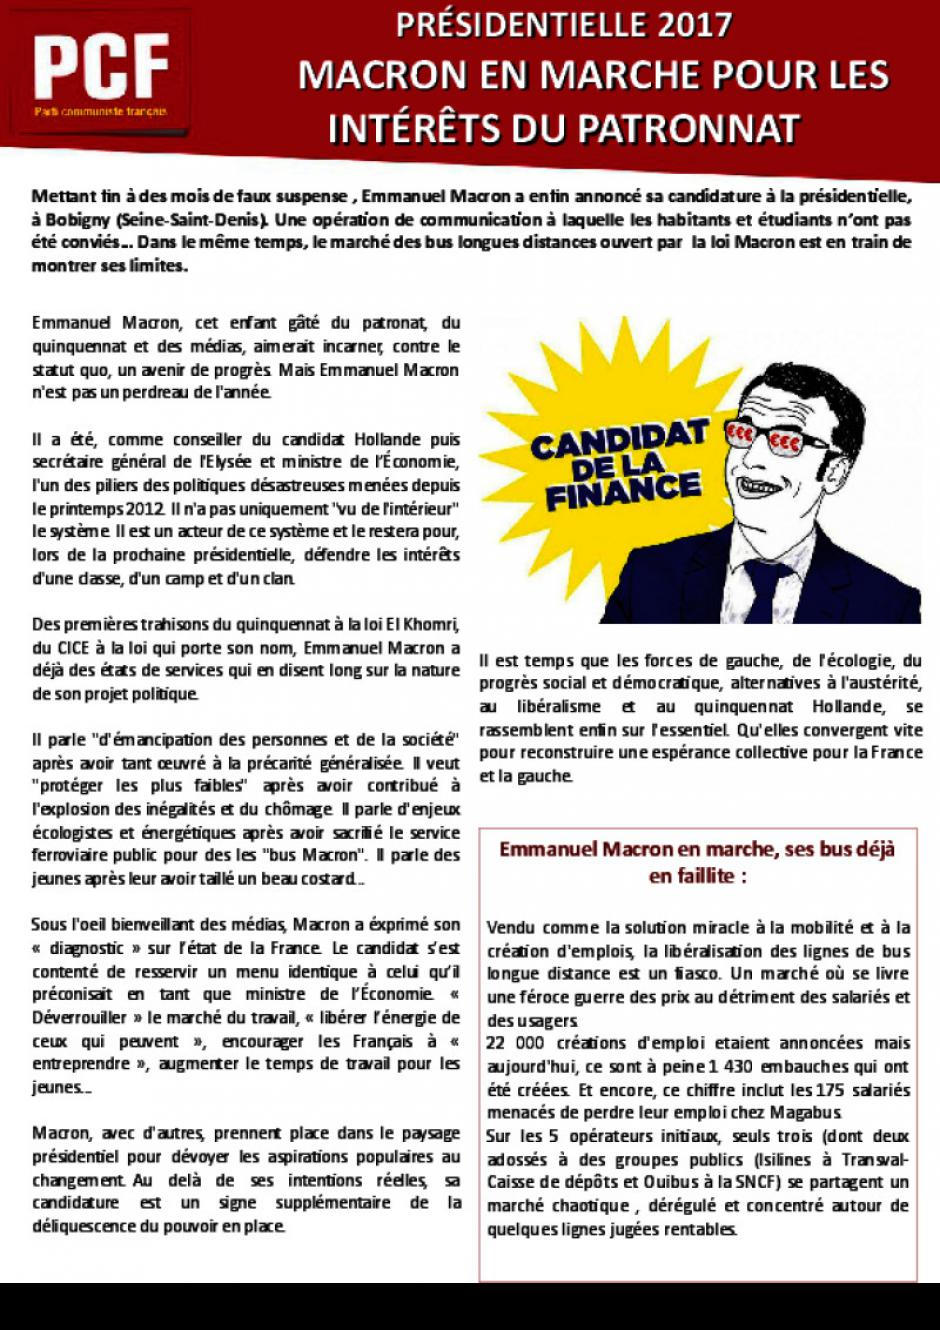 TRACT (18/11/16)